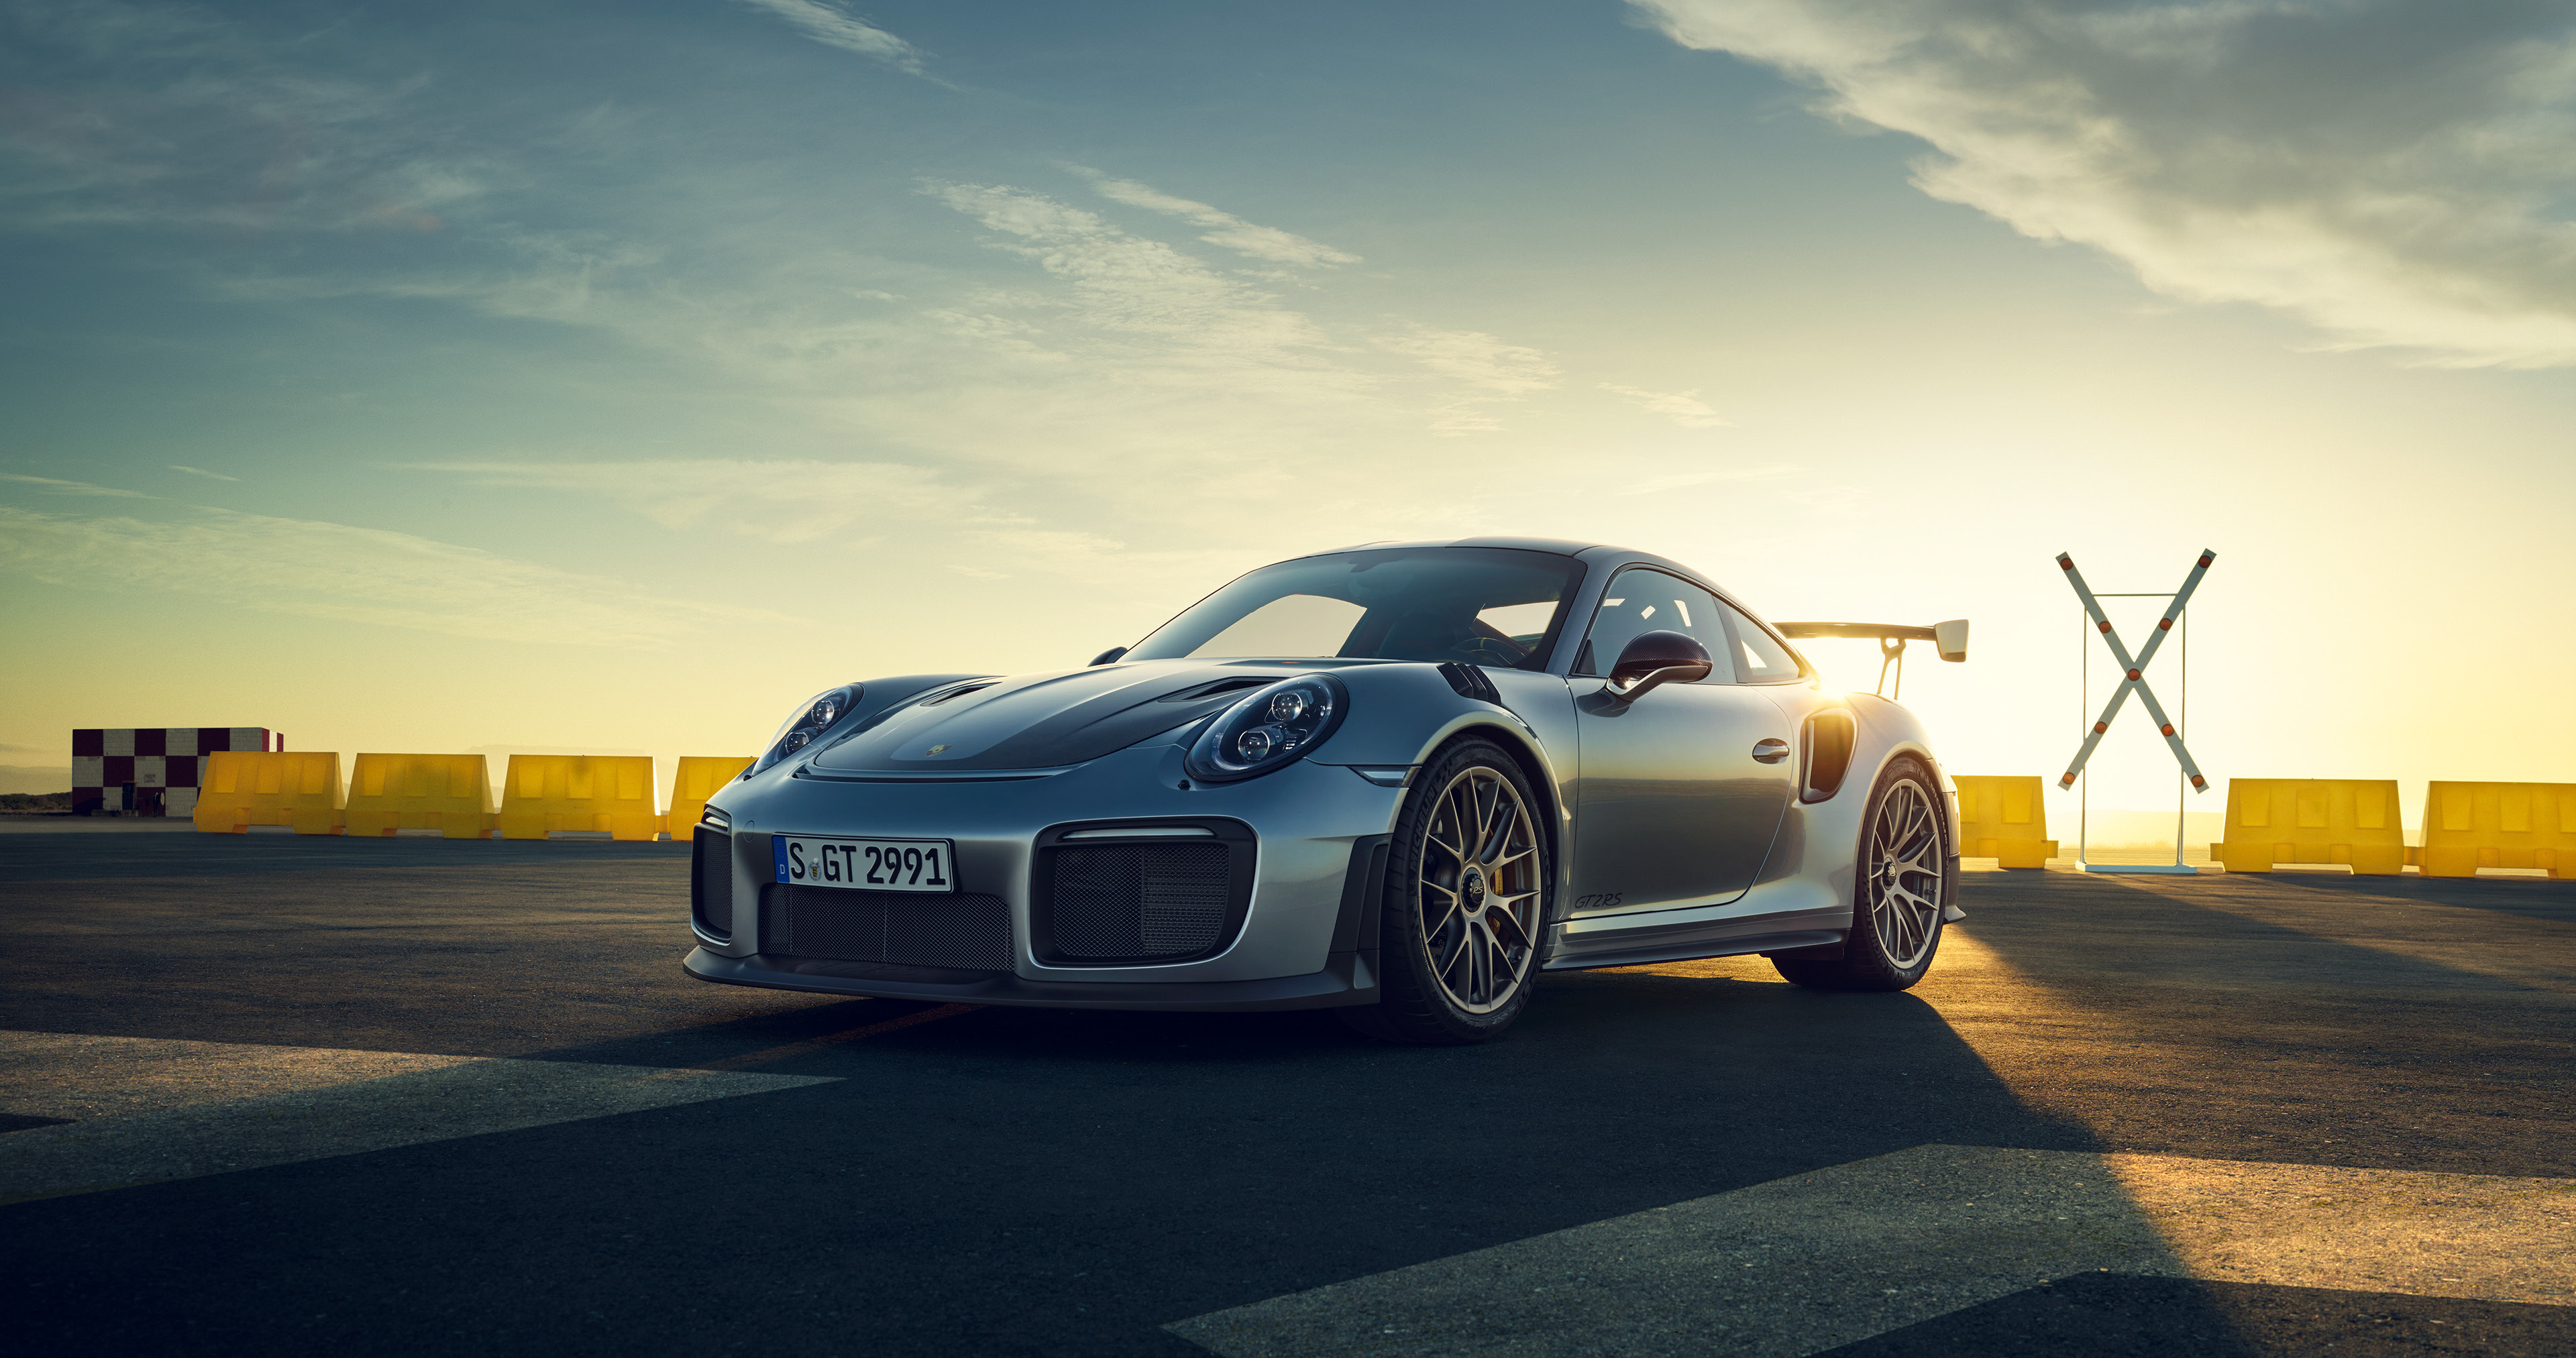 Porsche 911 Gt2 Rs 4k Hd Cars 4k Wallpapers Images Backgrounds Photos And Pictures